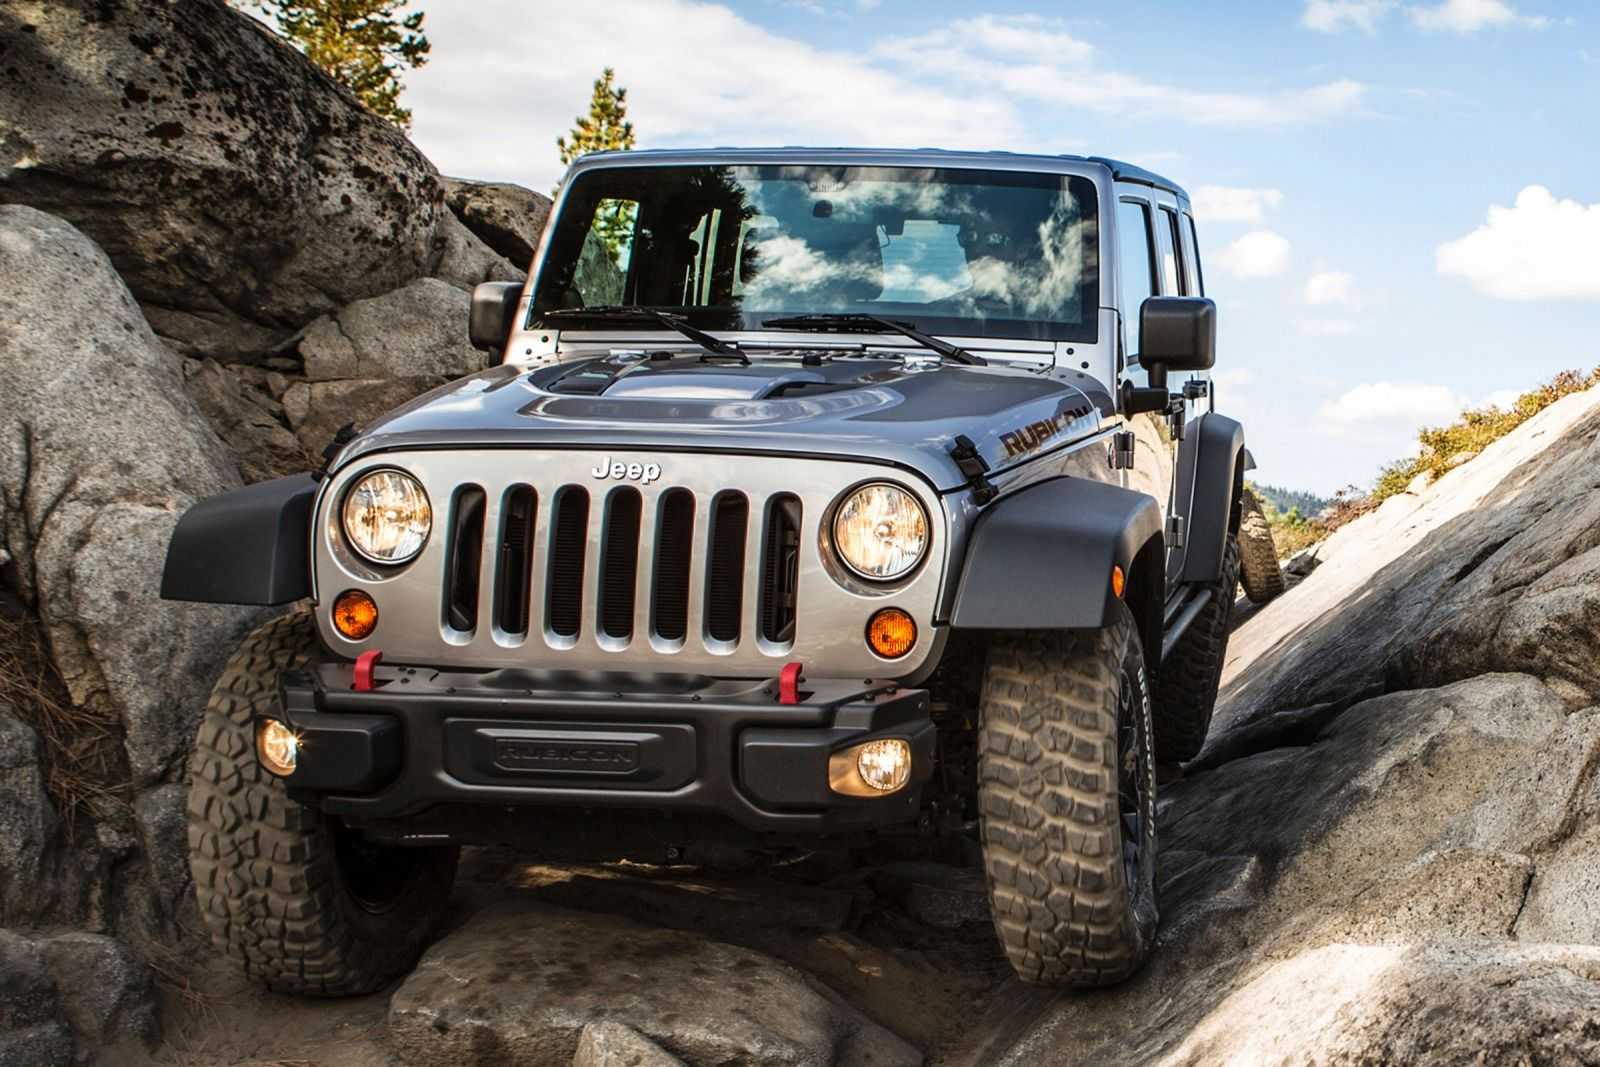 2015 Jeep Wrangler - Offroading